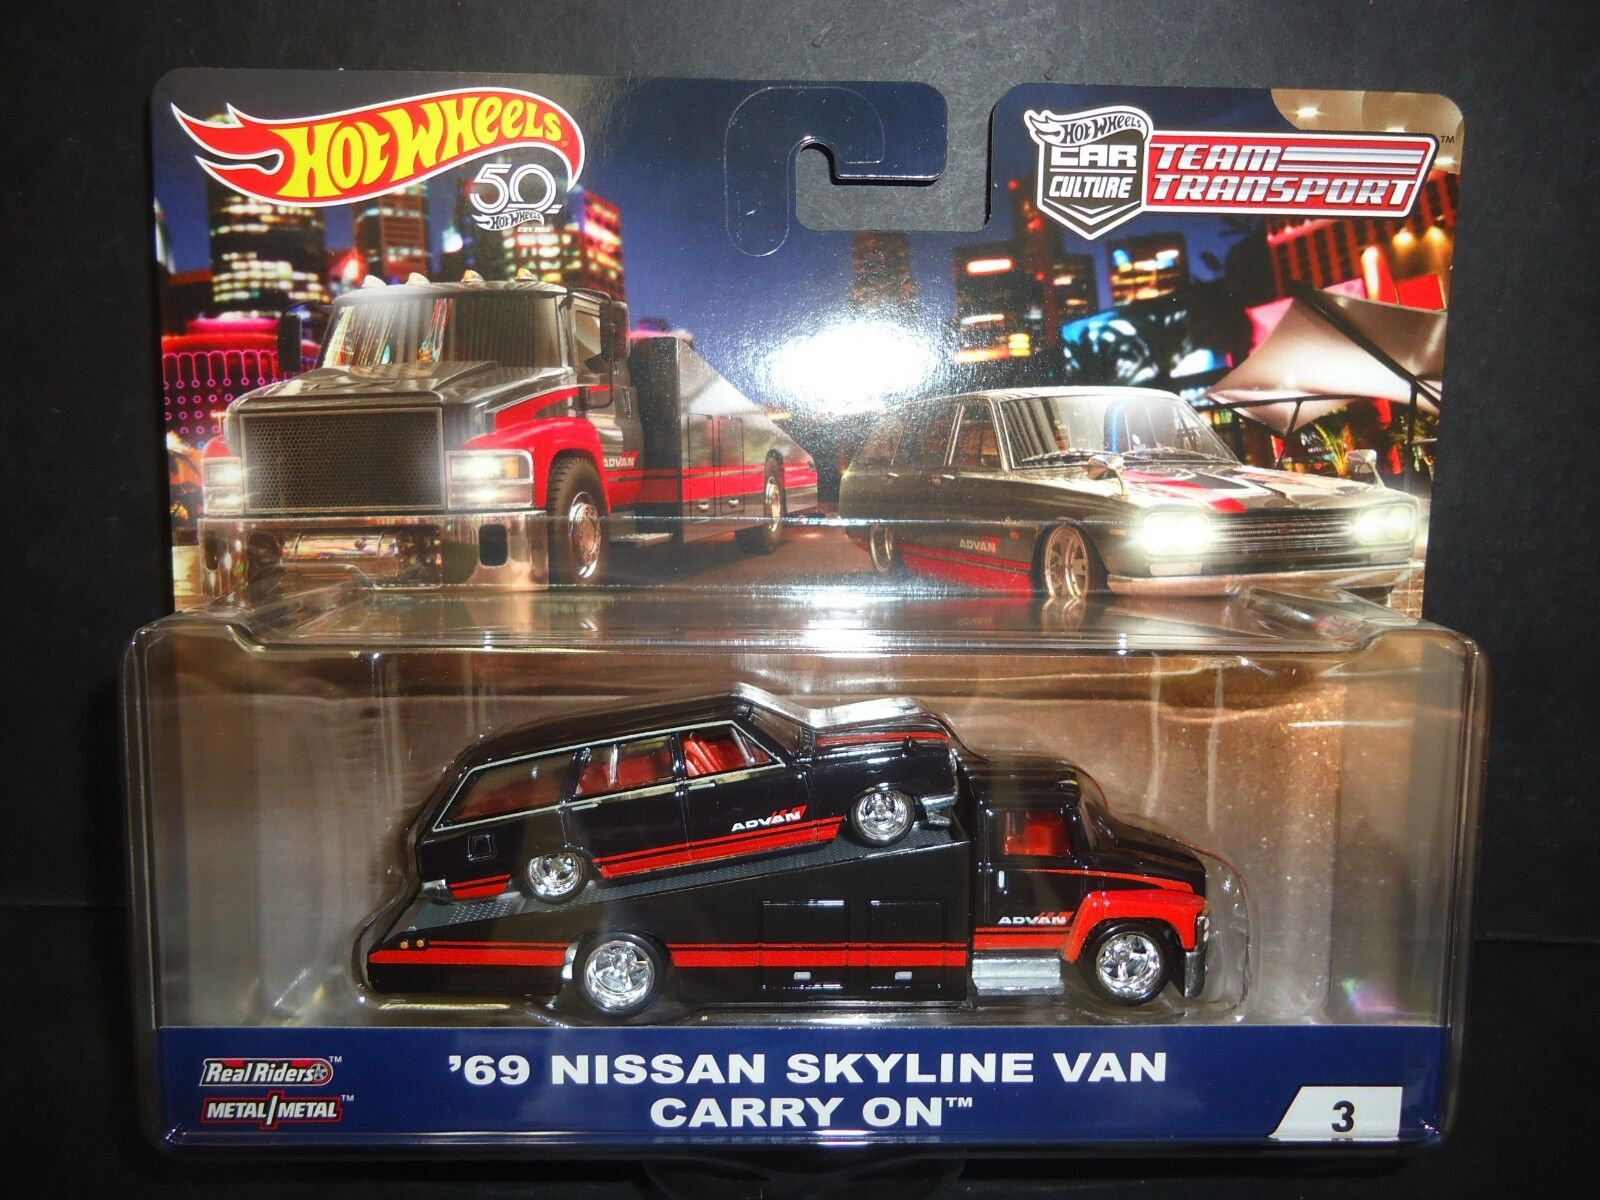 Hot Wheels Carry on Nissan Skyline Wagon ADVAN Team Transport FLF56-956A 1 64